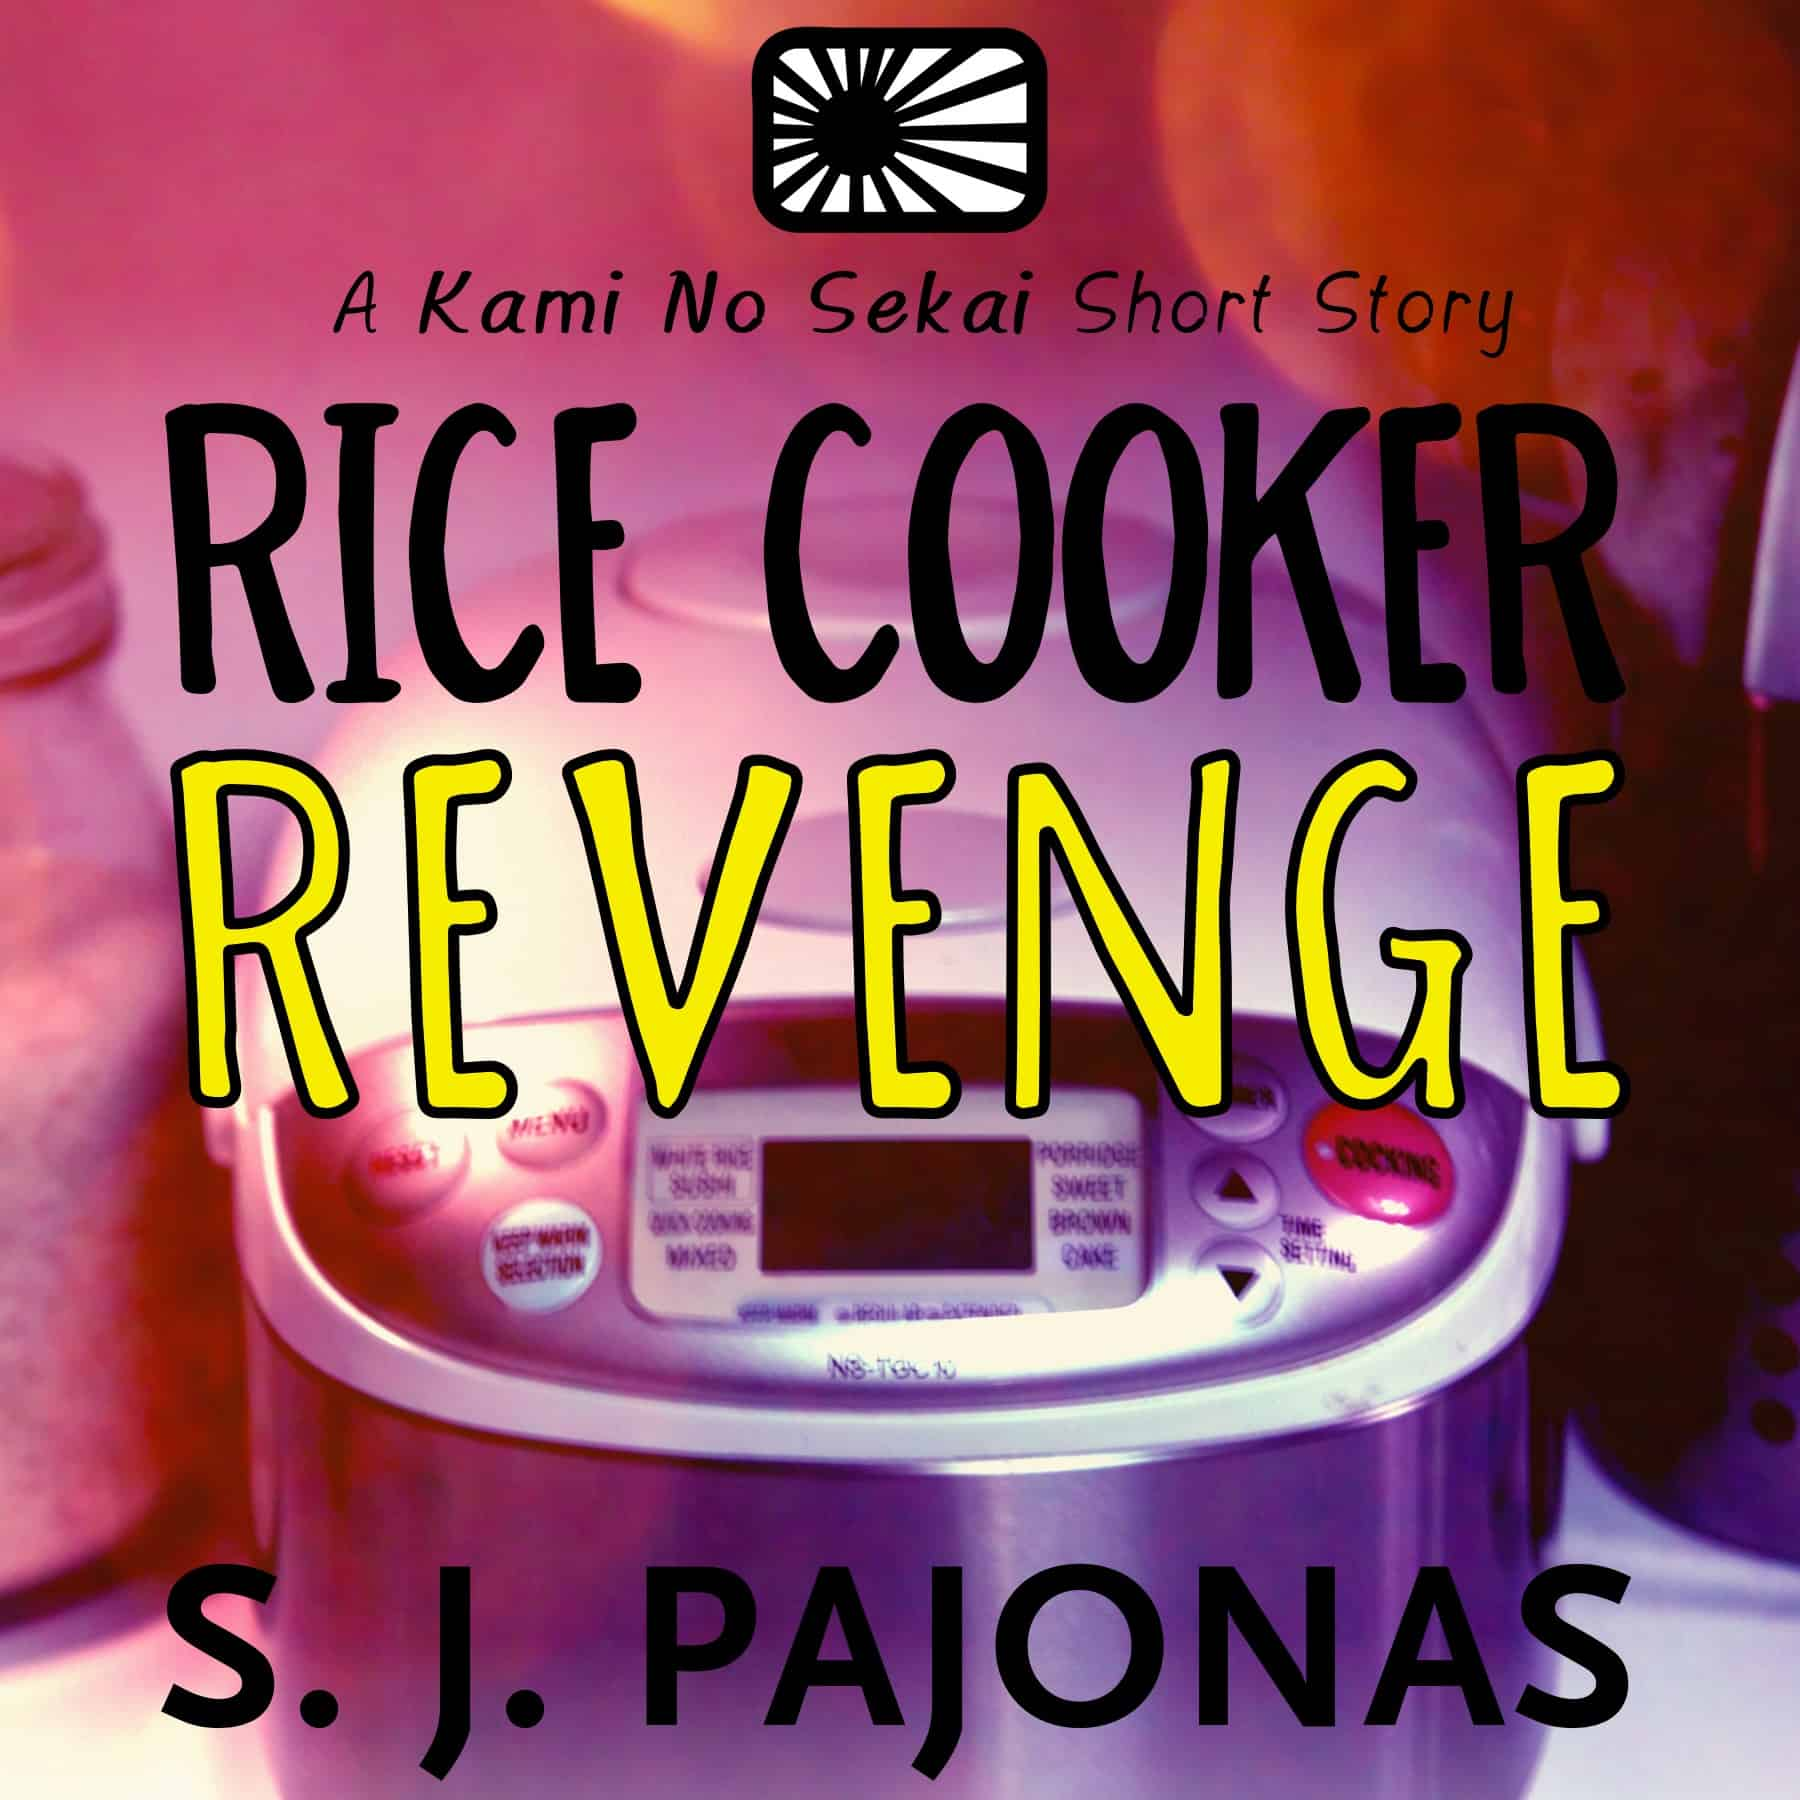 Using Amazon Polly for narration, I have produced a podcast for RICE COOKER REVENGE! I hope you all will check it out.